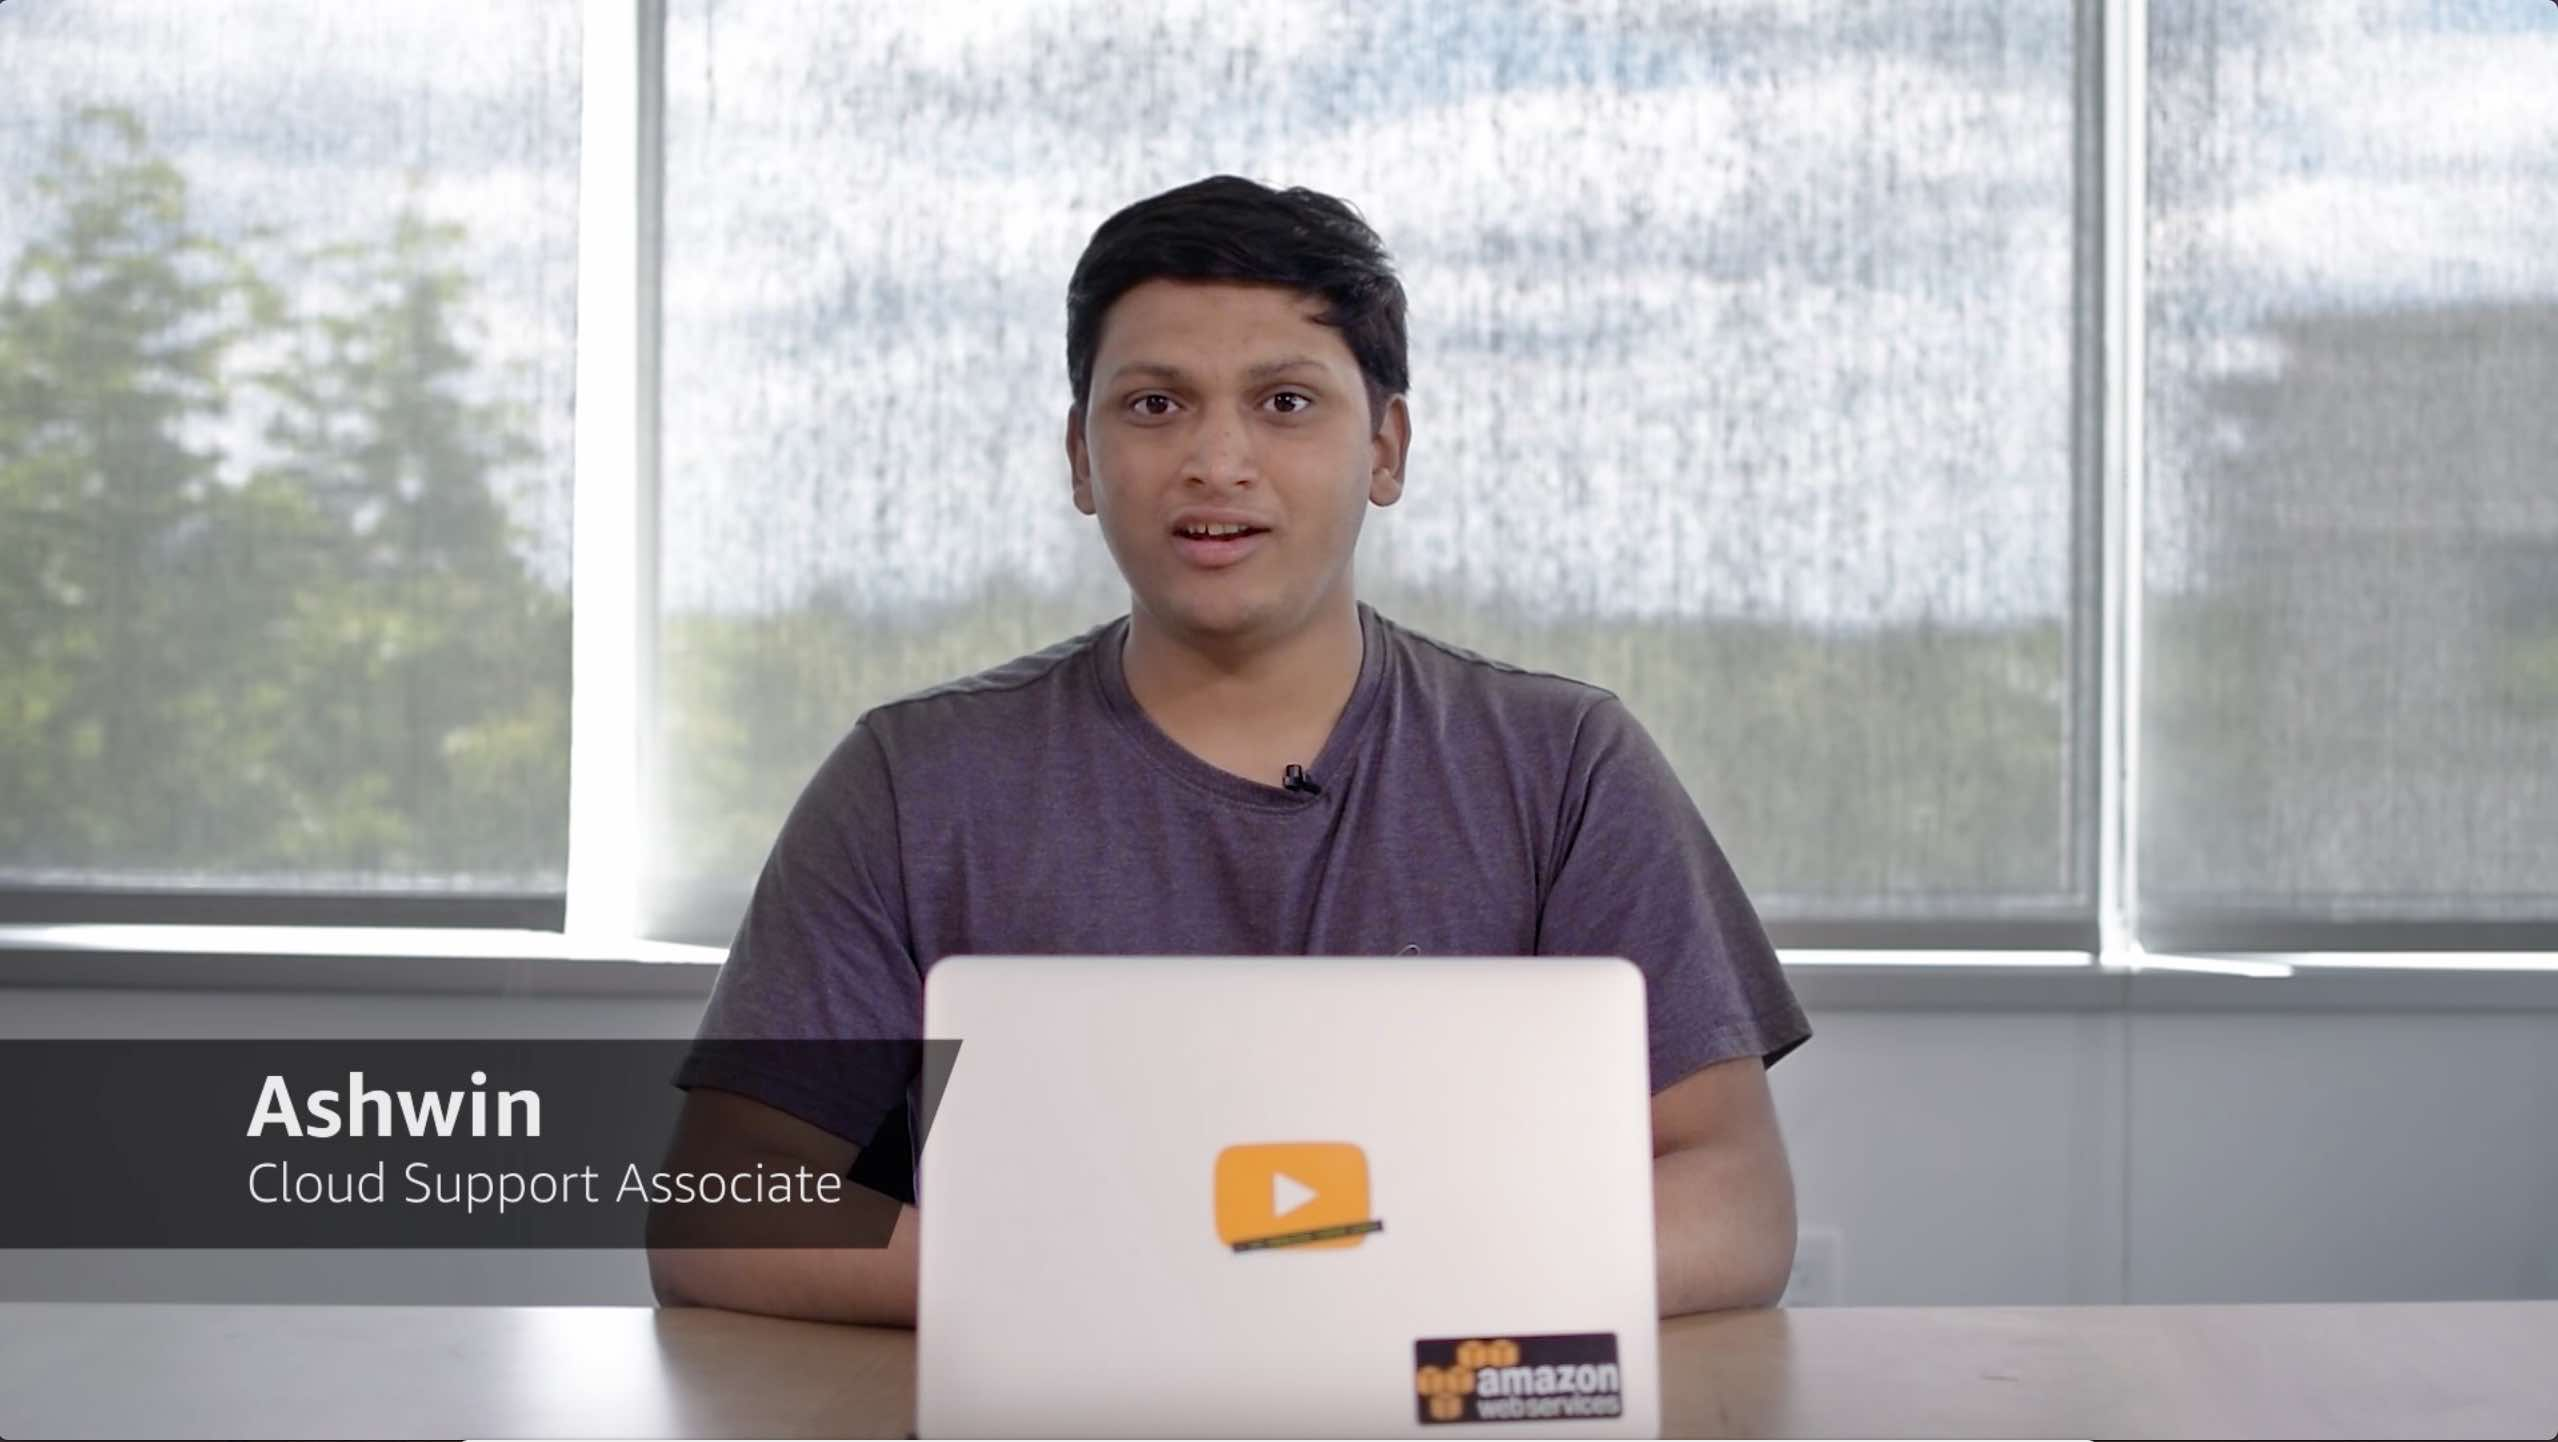 Watch Ashwin's video to learn more